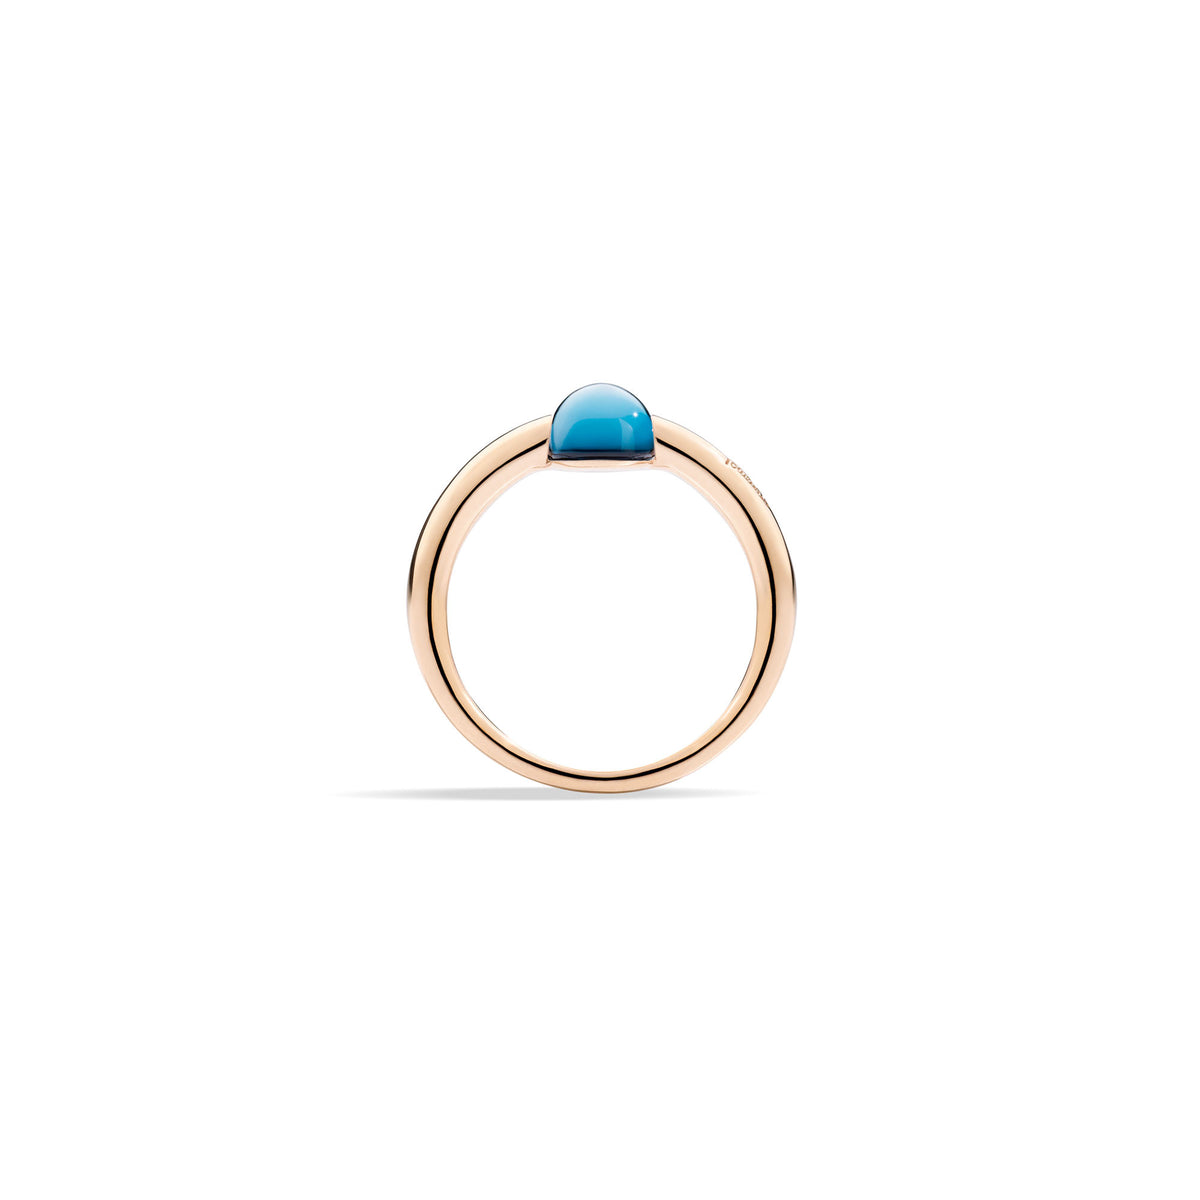 M'ama non M'ama Ring in 18k Rose Gold with London Blue Topaz - Orsini Jewellers NZ